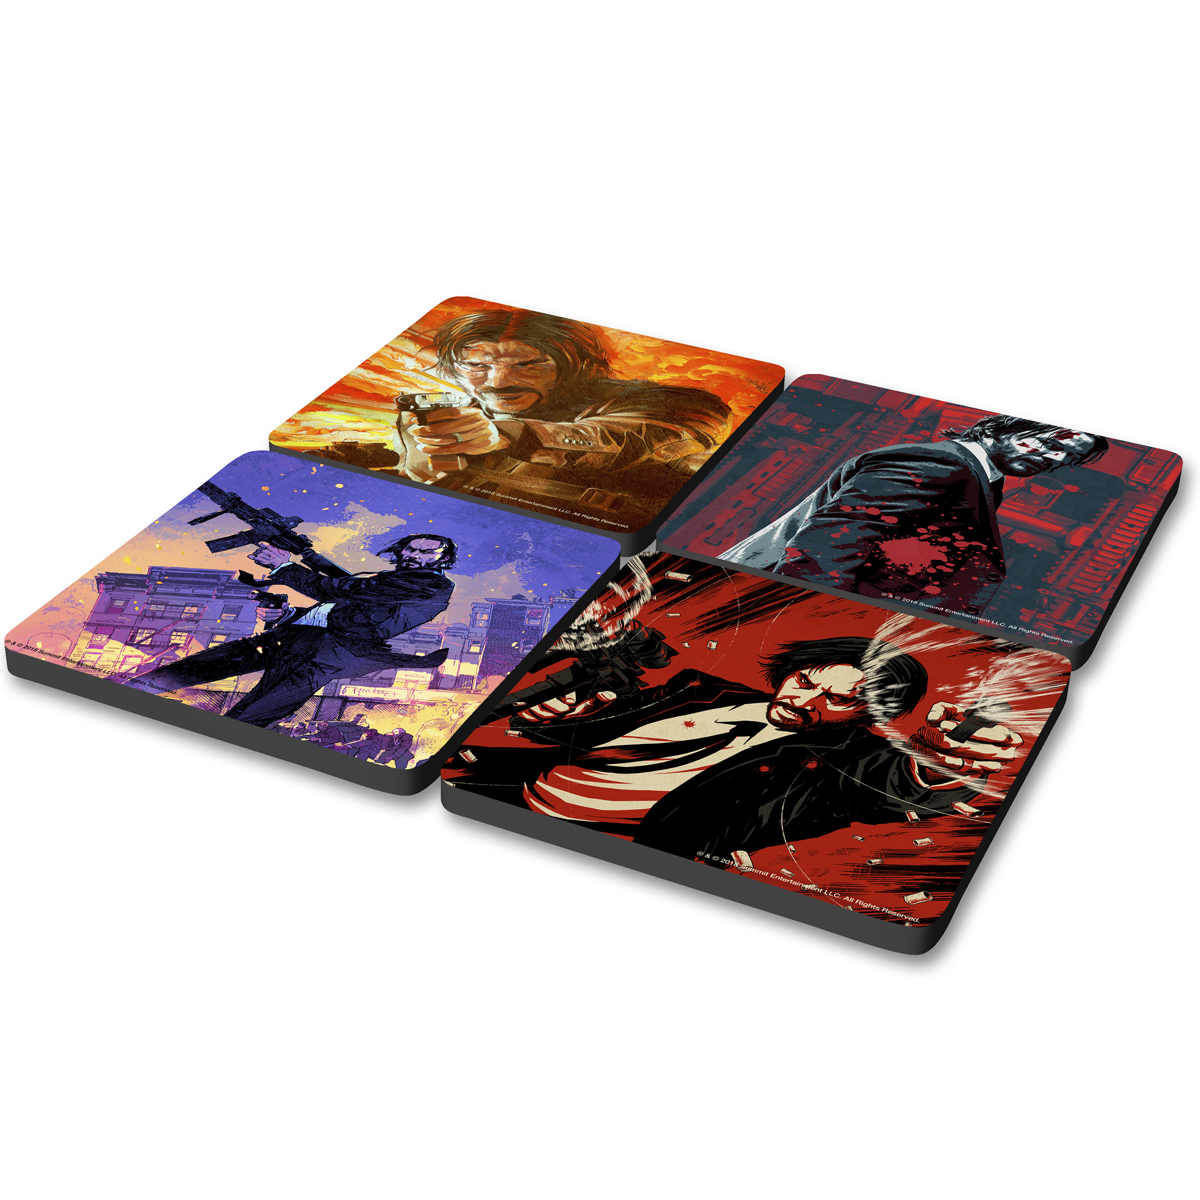 John Wick Key Art Coasters (Set of 4)